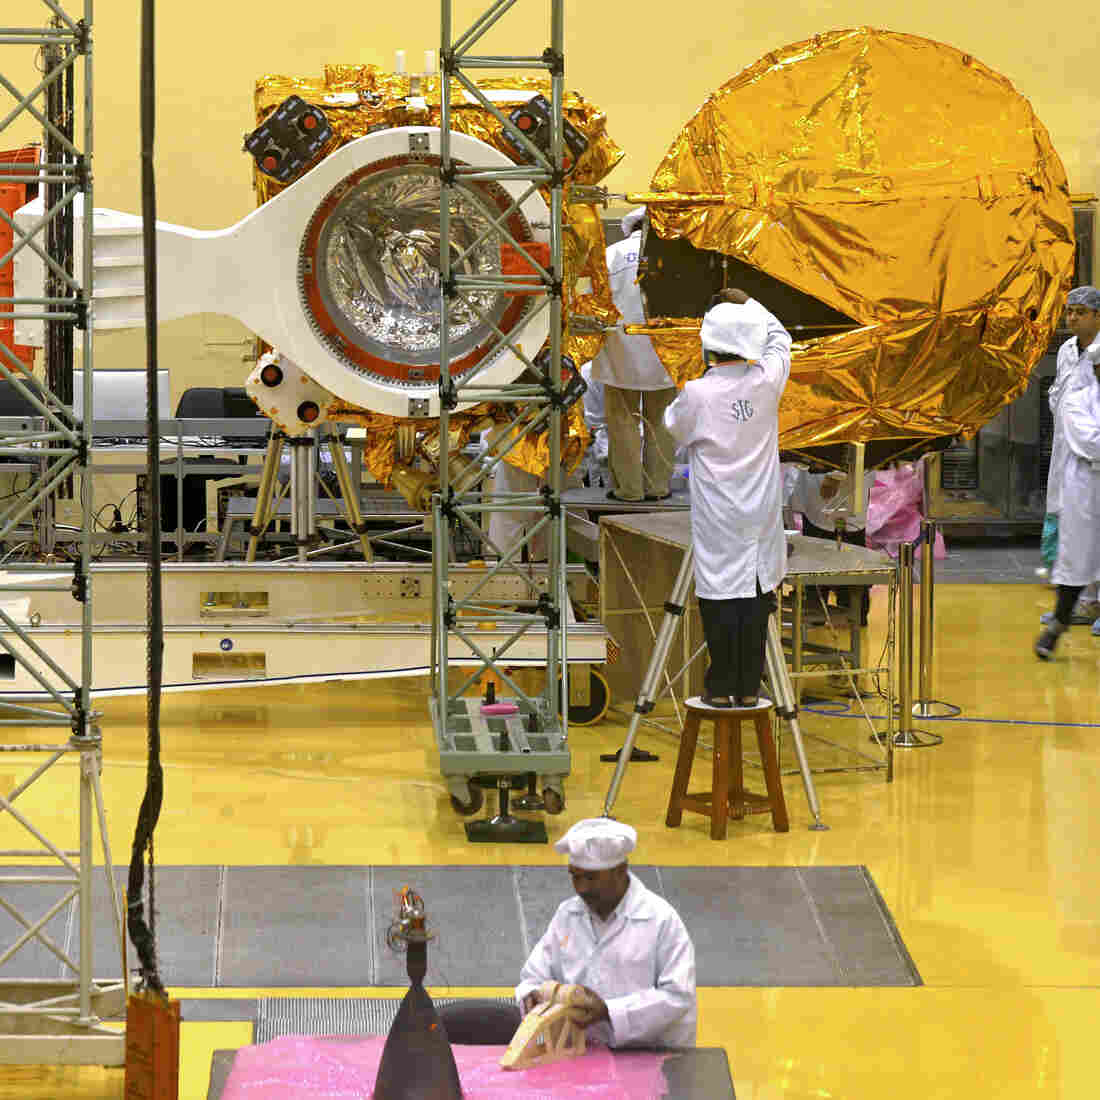 Scientists and engineers work on the Mars Orbiter at the Indian Space Research Organisation's satellite center in Bangalore, India, on Sept. 11. The spacecraft is scheduled to be launched sometime in the next three weeks.